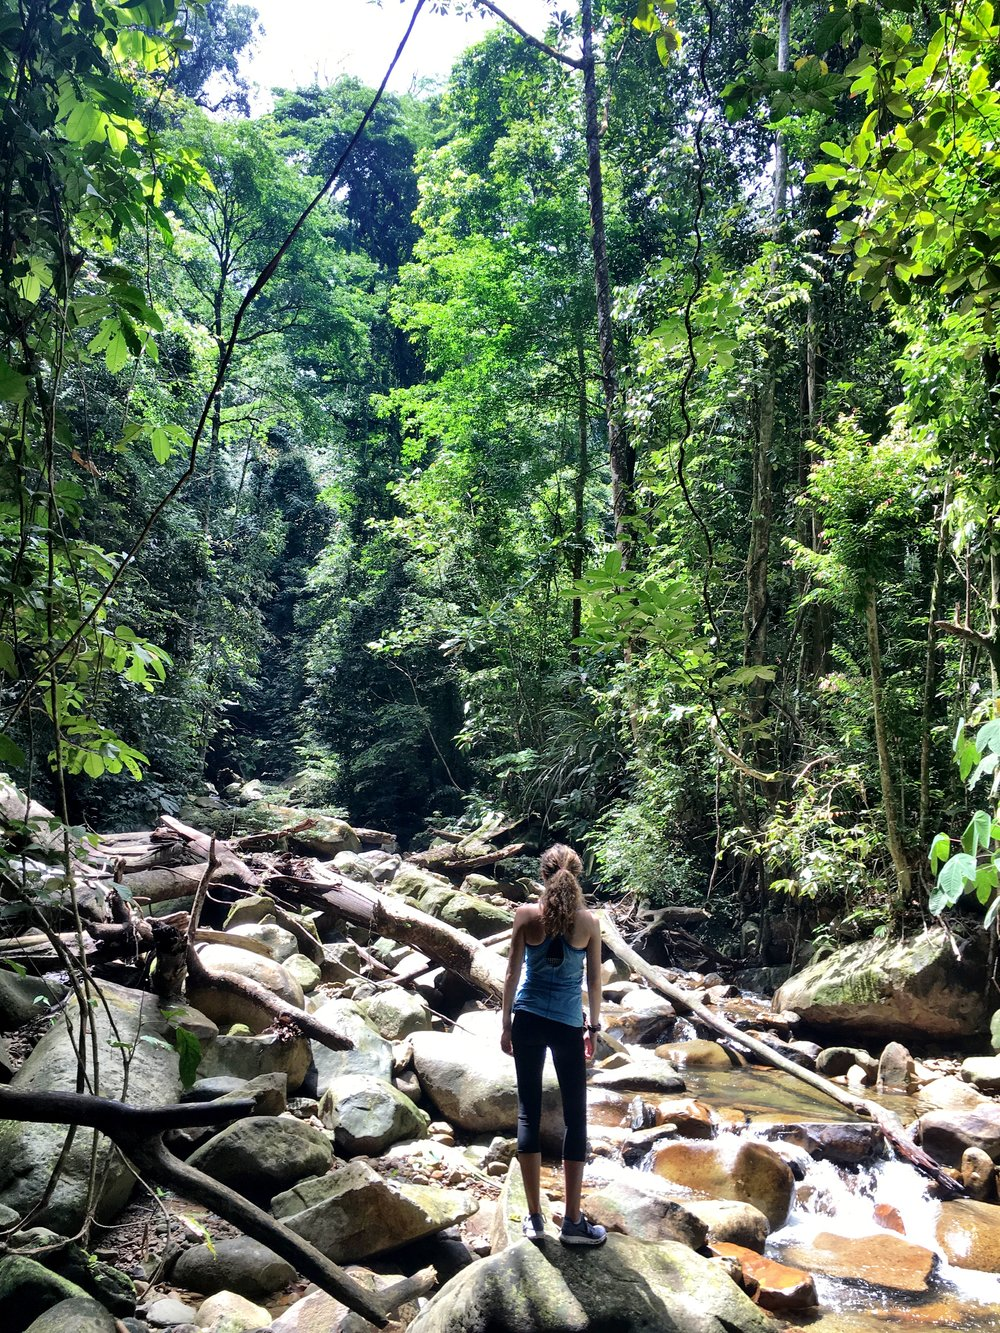 I have been on some amazing, nourishing hikes this month.  This one was in Kubah National Park in Borneo.  Nature = nourishment.